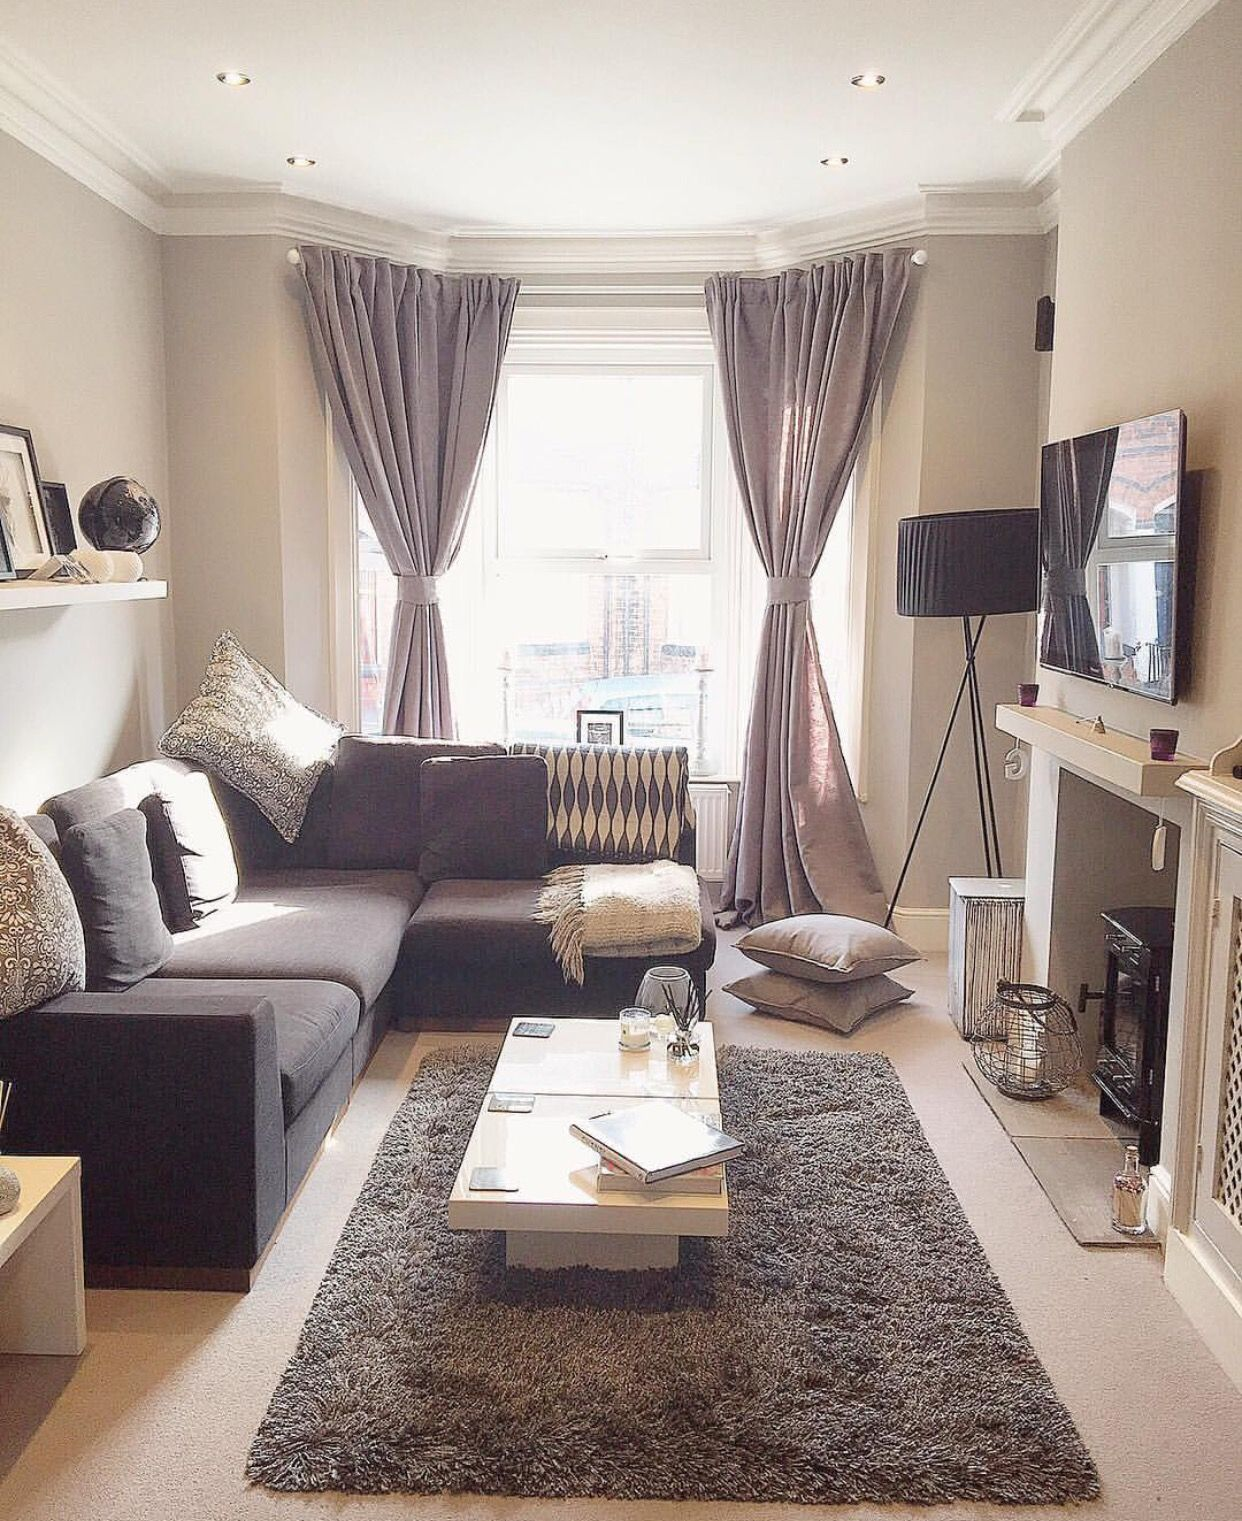 Living room setup also apartment decorations in pinterest rh br